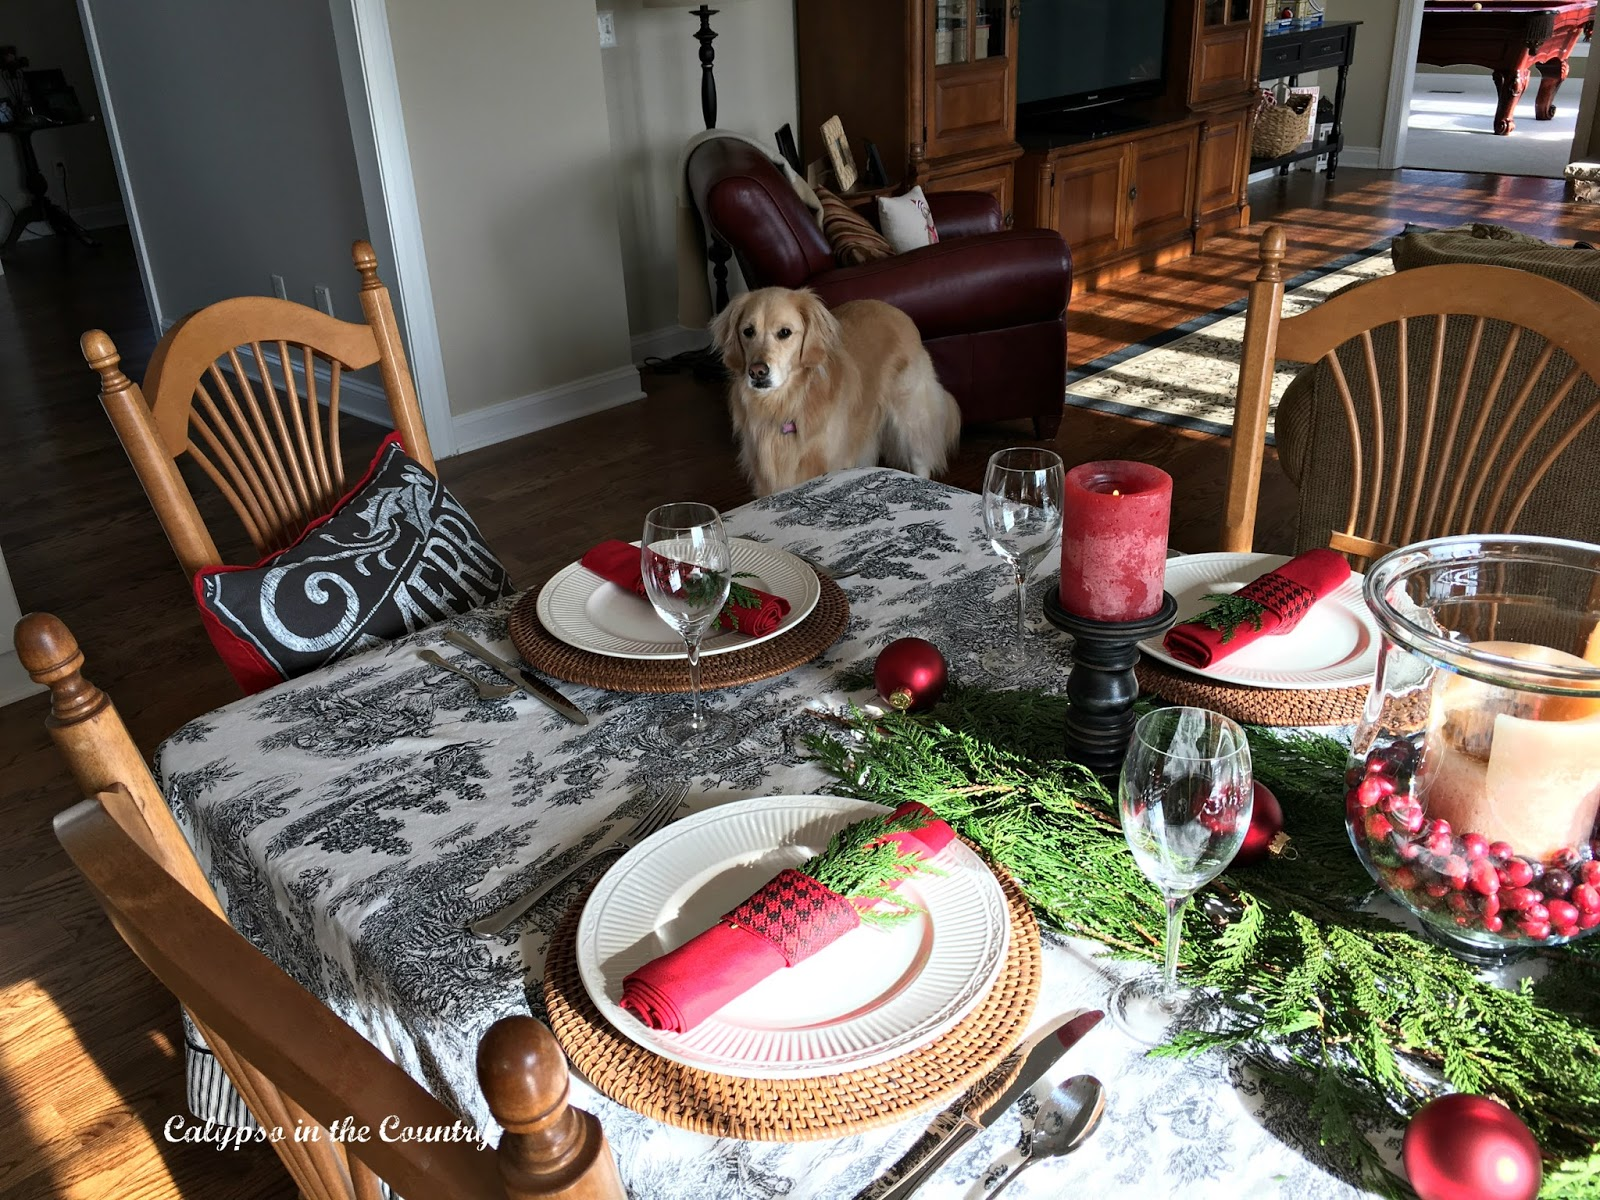 Christmas Table and Golden Retriever